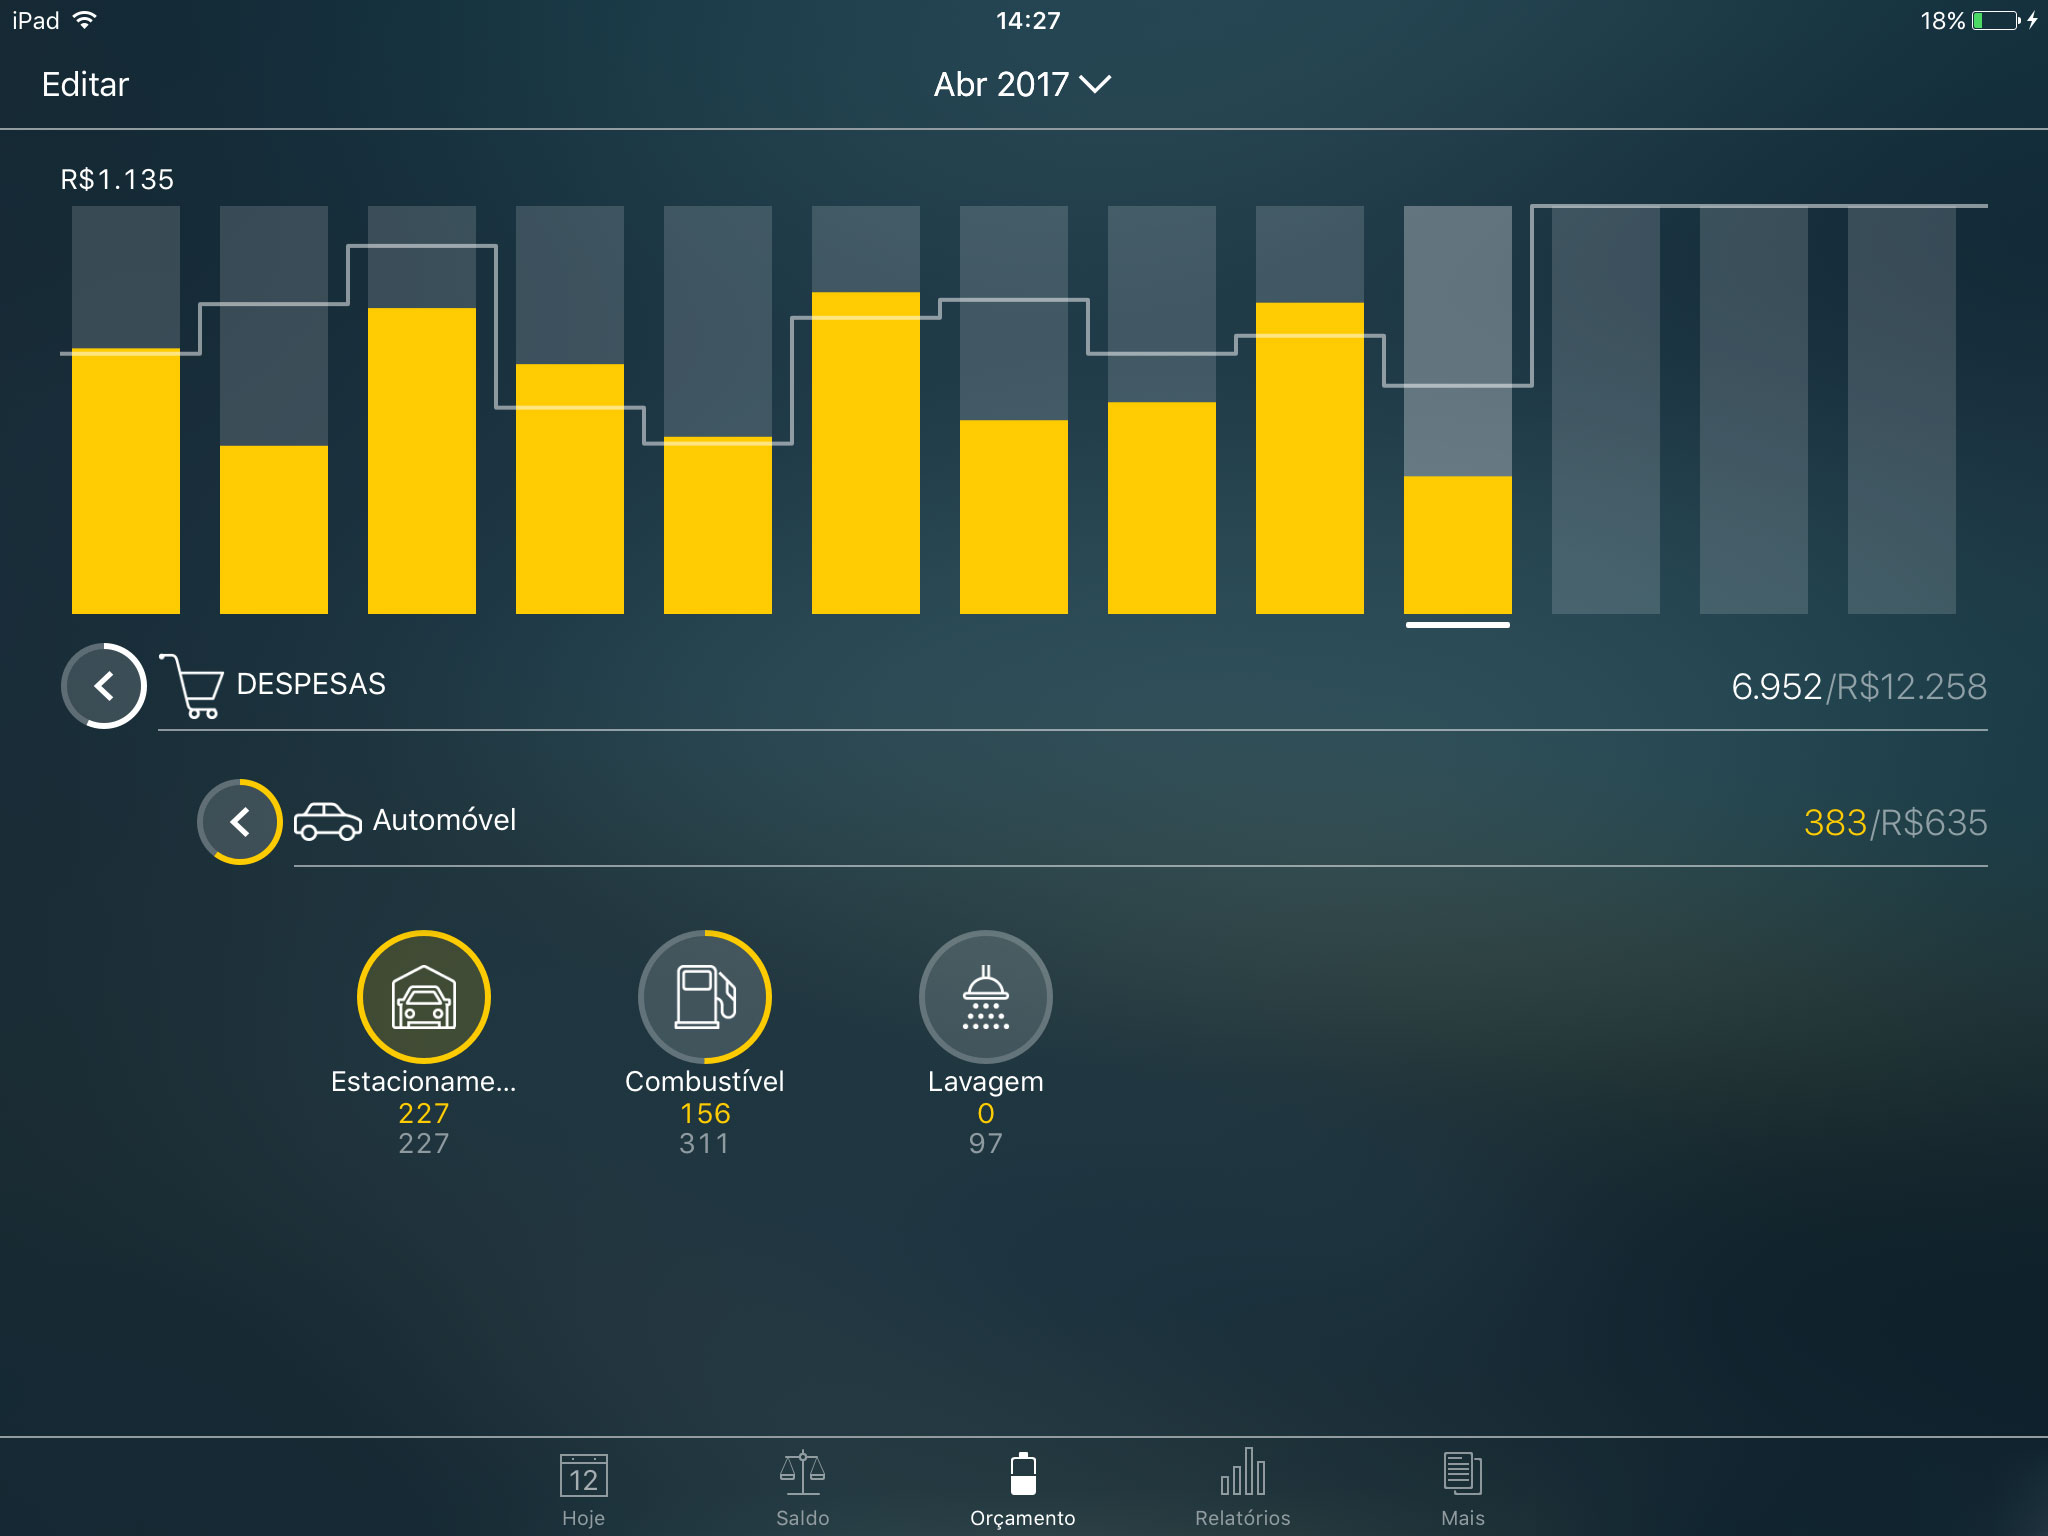 Money Pro - Categorias, subcategorias - iPad